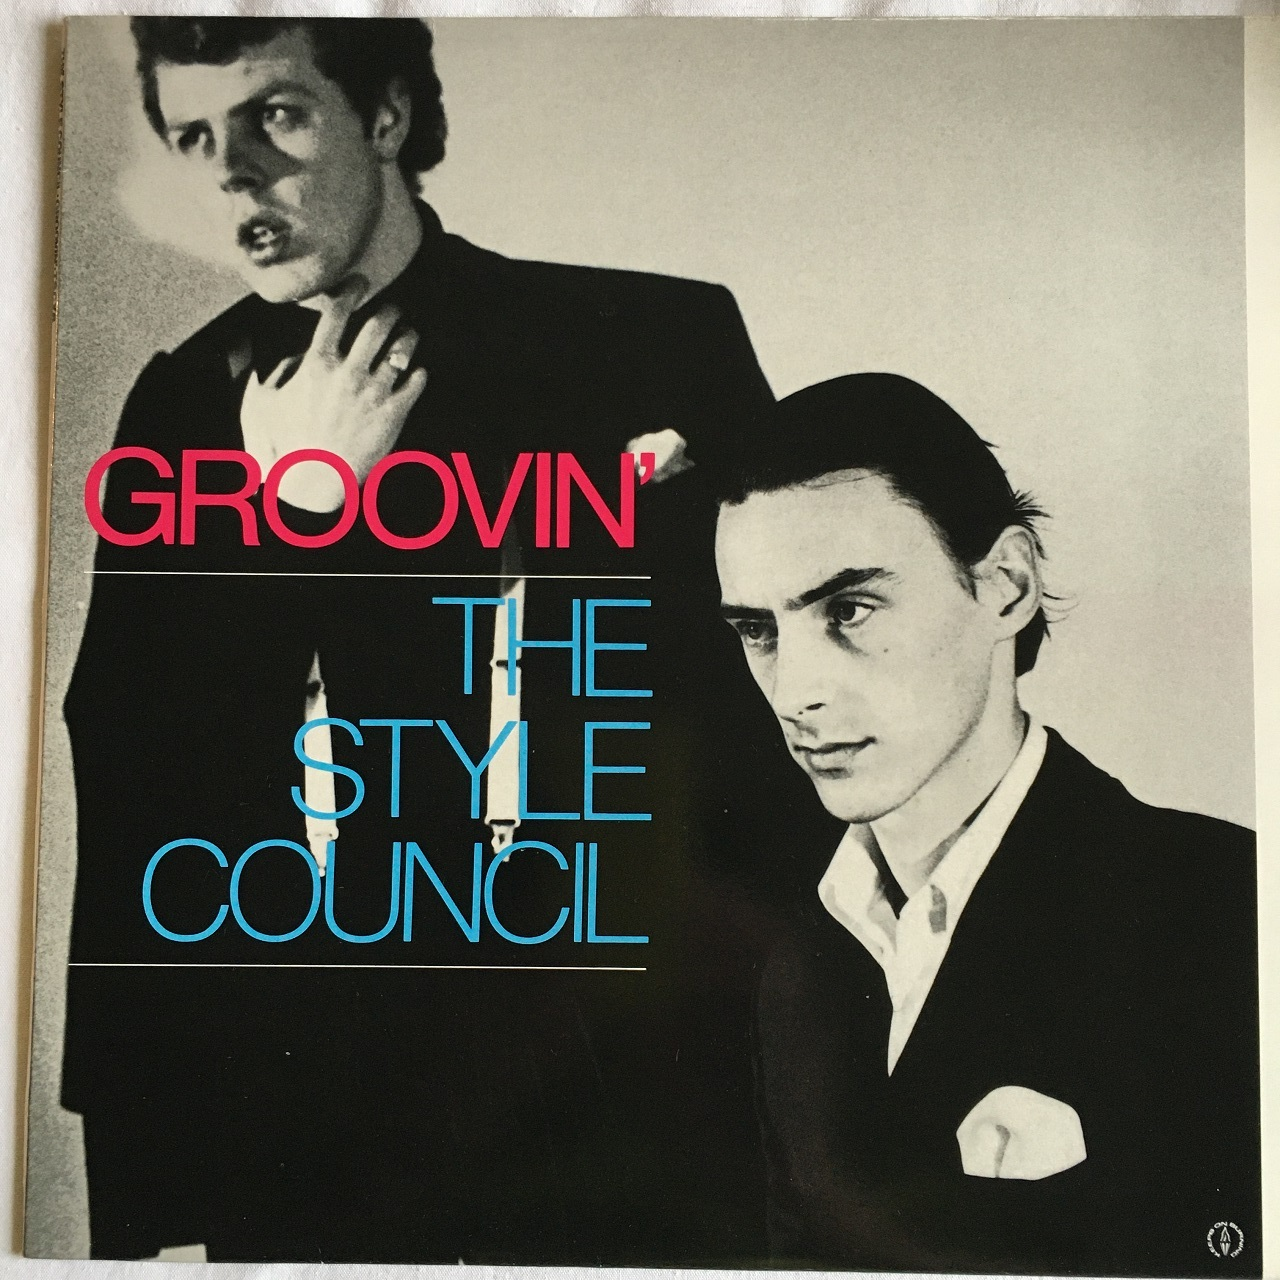 【12inch・英盤】Style Council / Groovin' (You're The Best Thing・The Big Boss Groove)